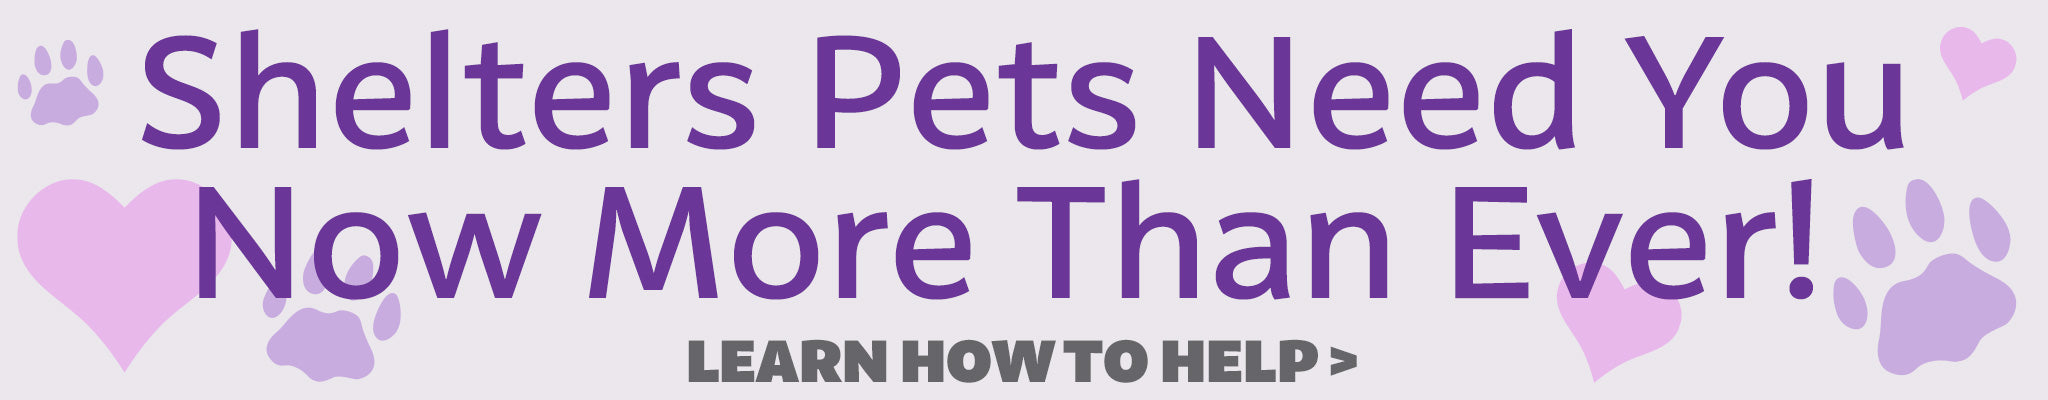 Shelter Pets Need You Now More Than Never | Learn How To Help